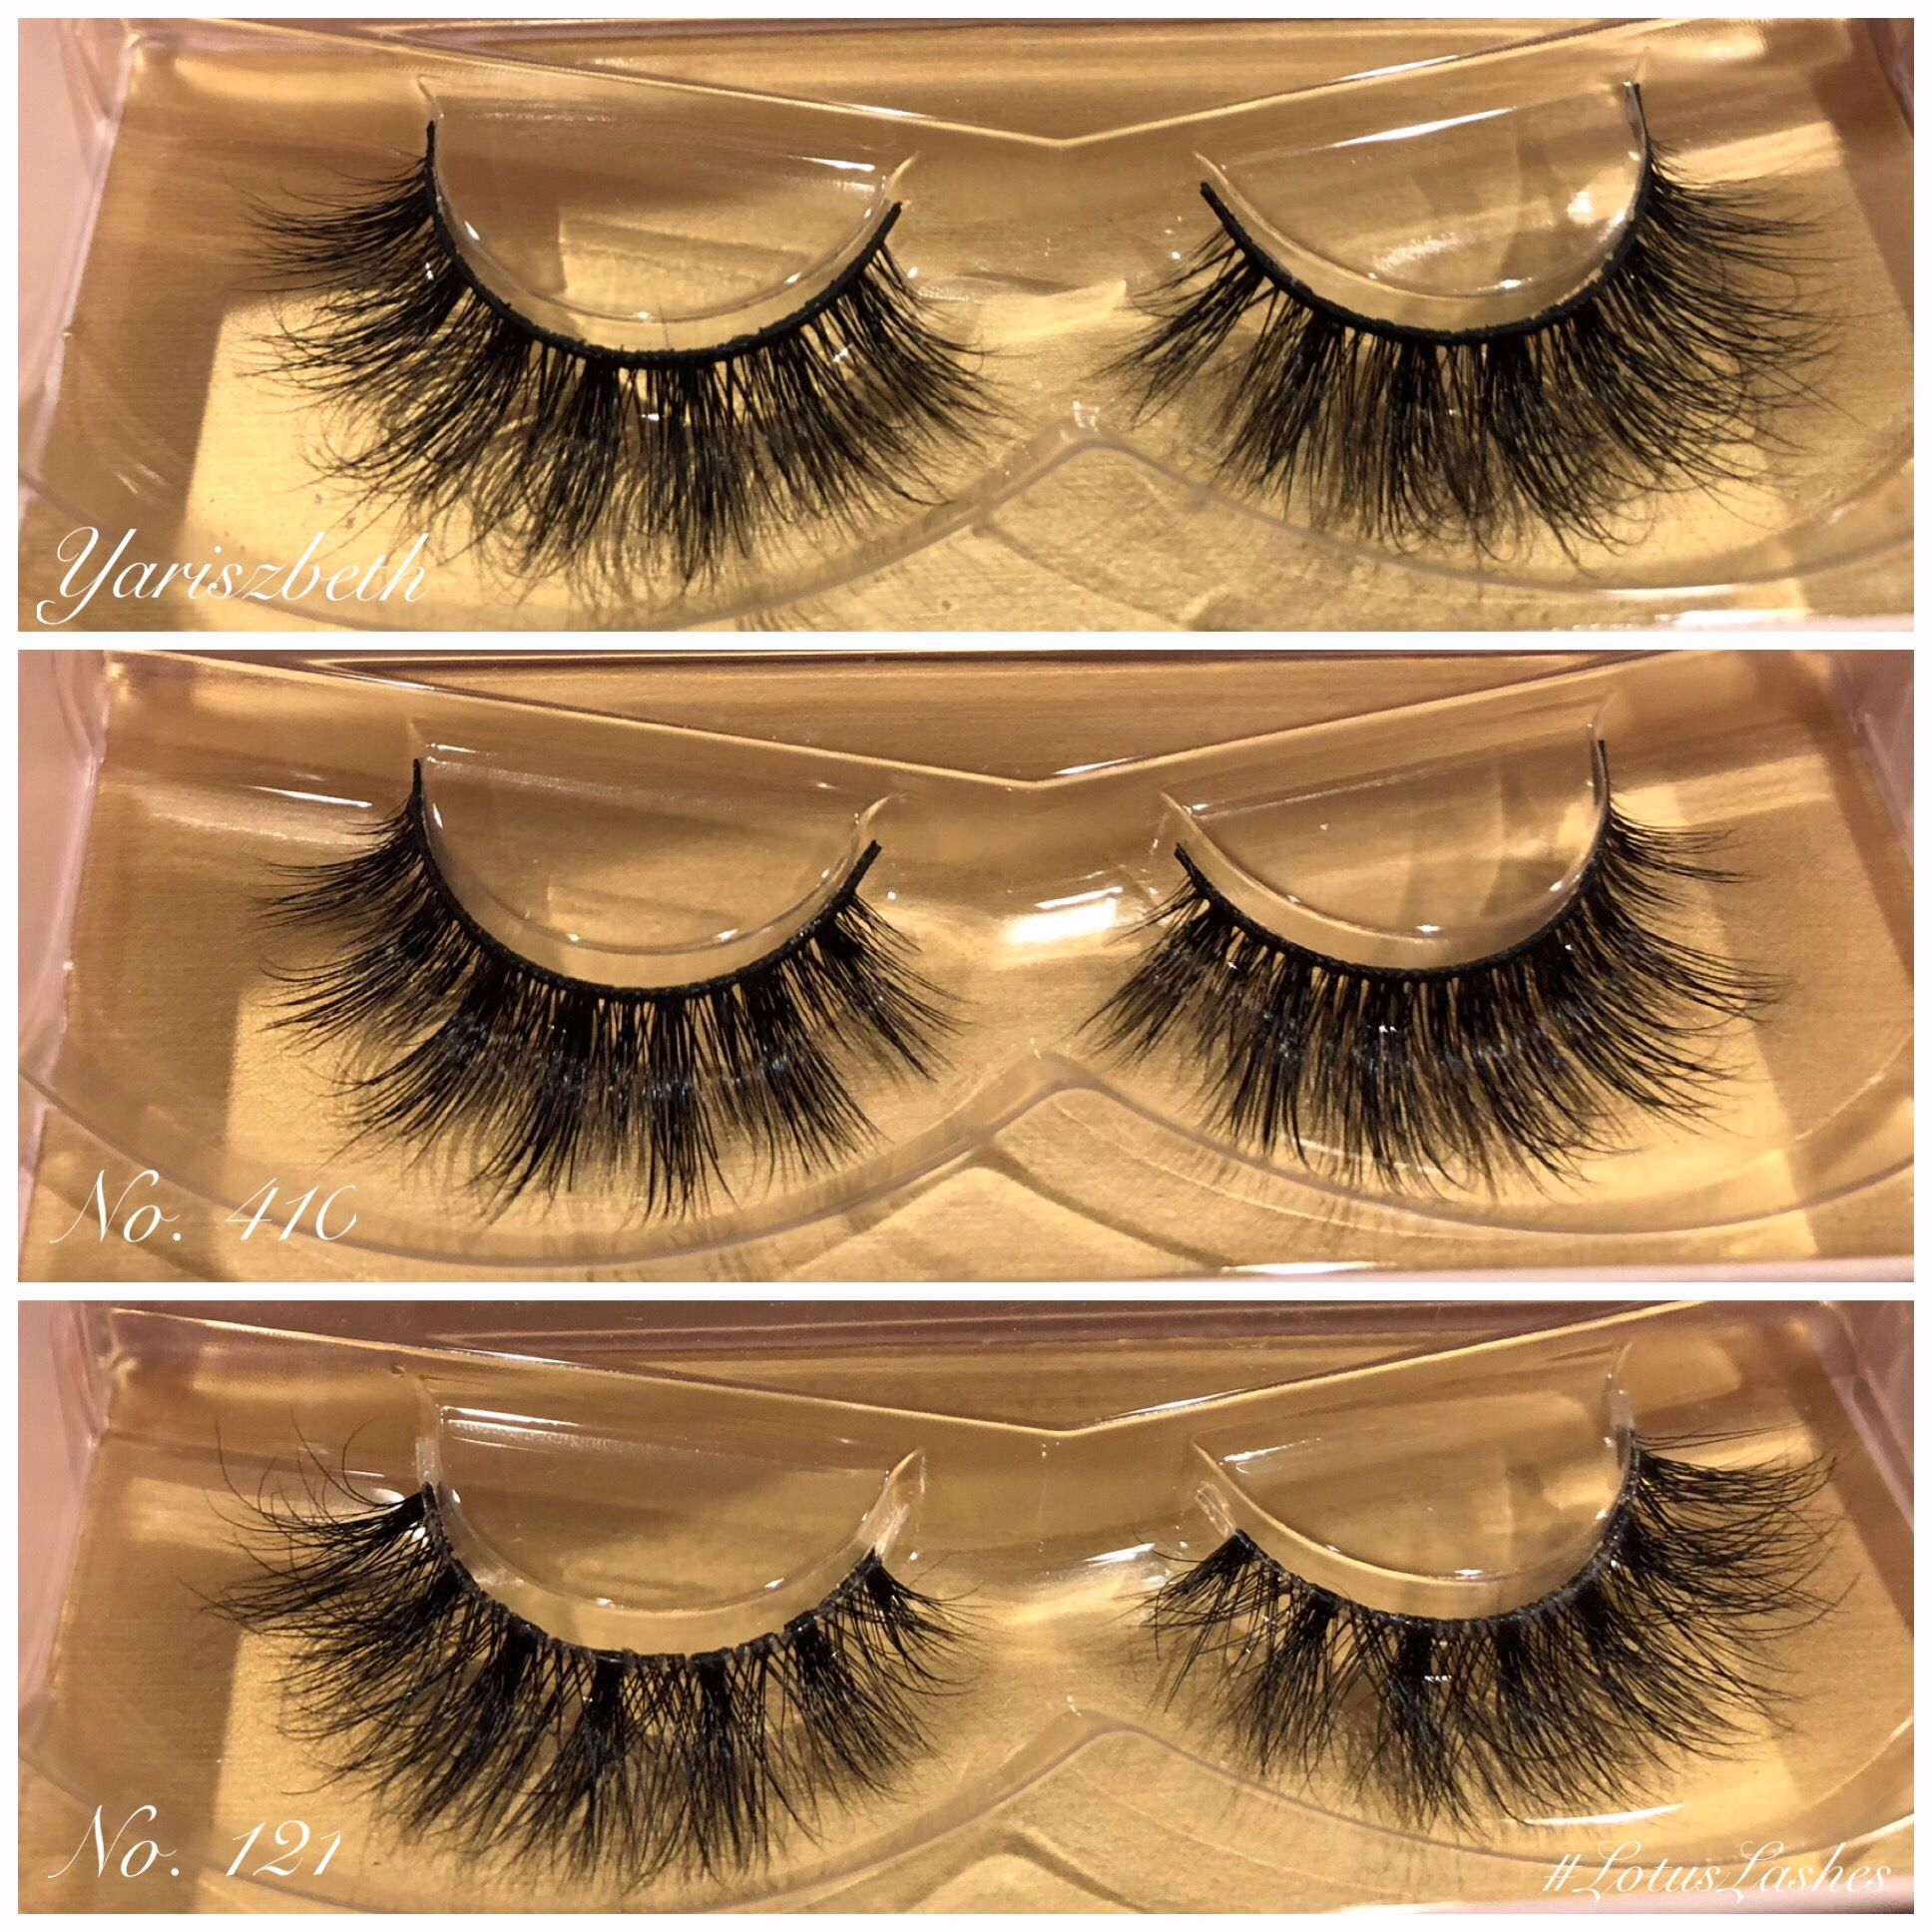 74f805b3540 Stunning doll eyed mink lashes by Lotus | // Our Beautiful Lashes ...